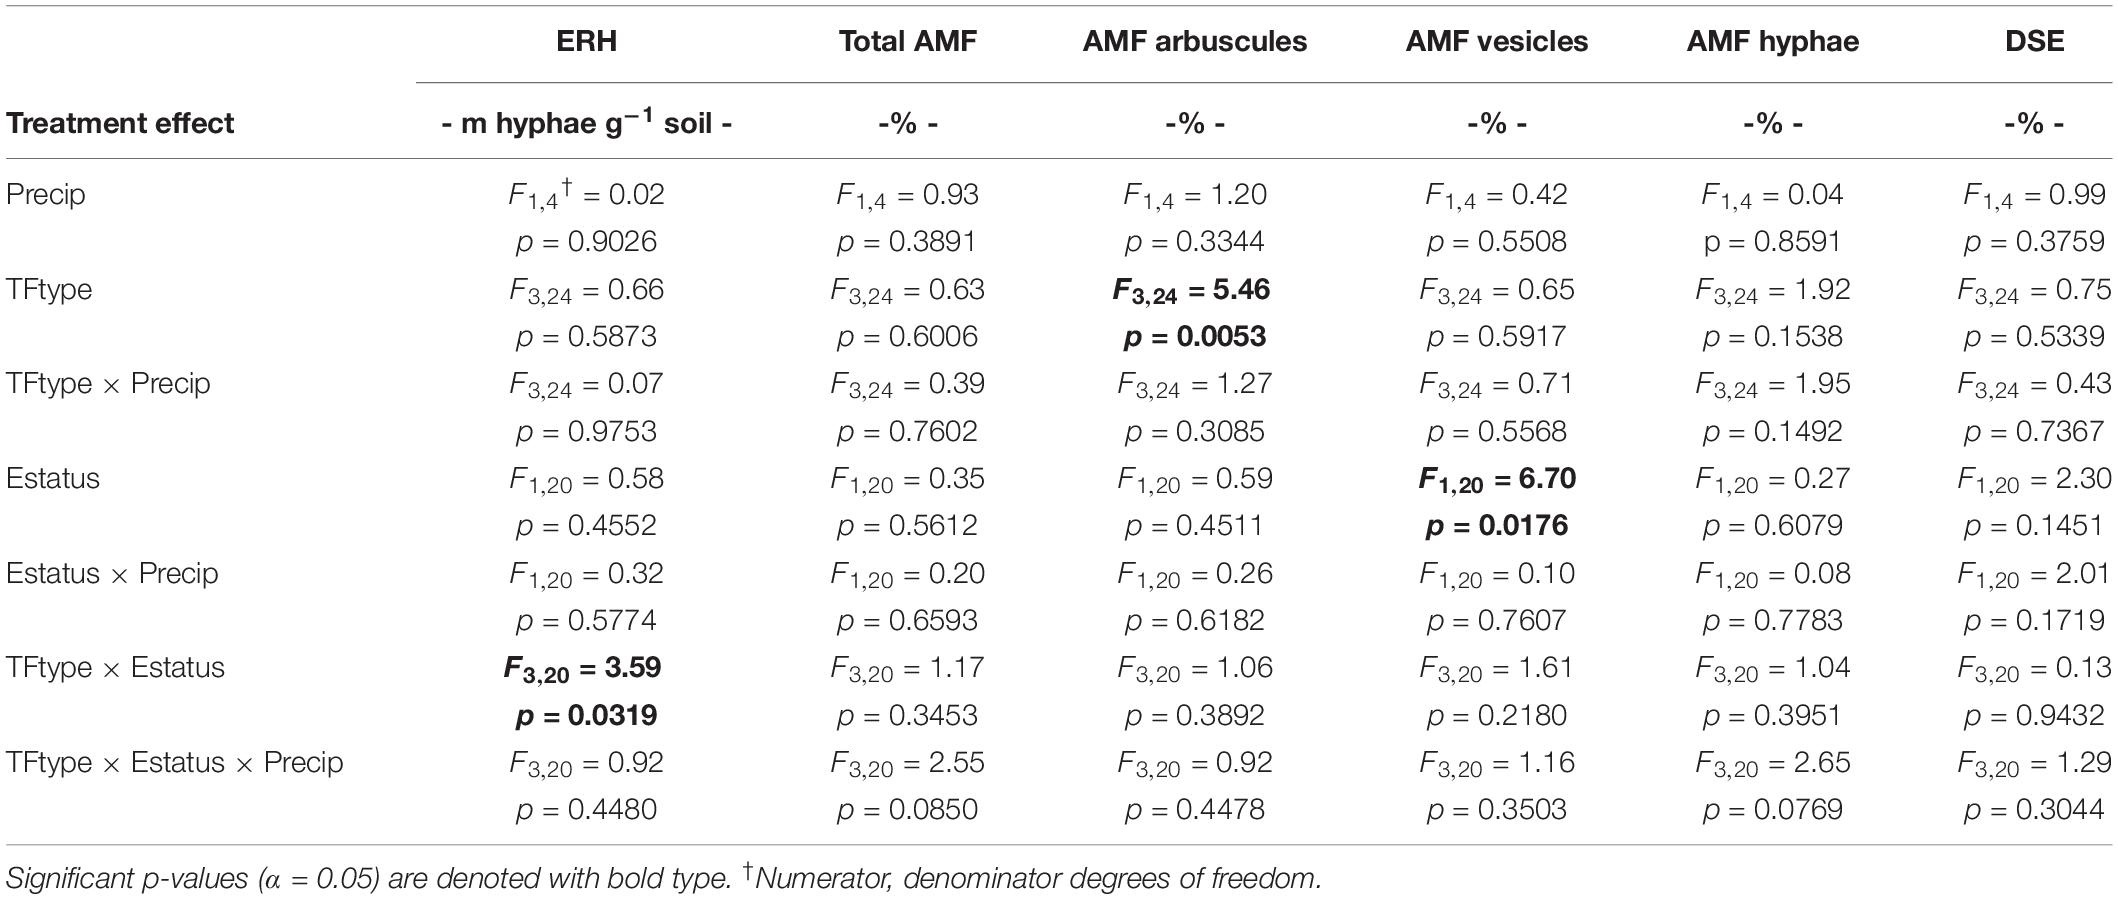 Amf Bz frontiers | tall fescue and e. coenophiala genetics